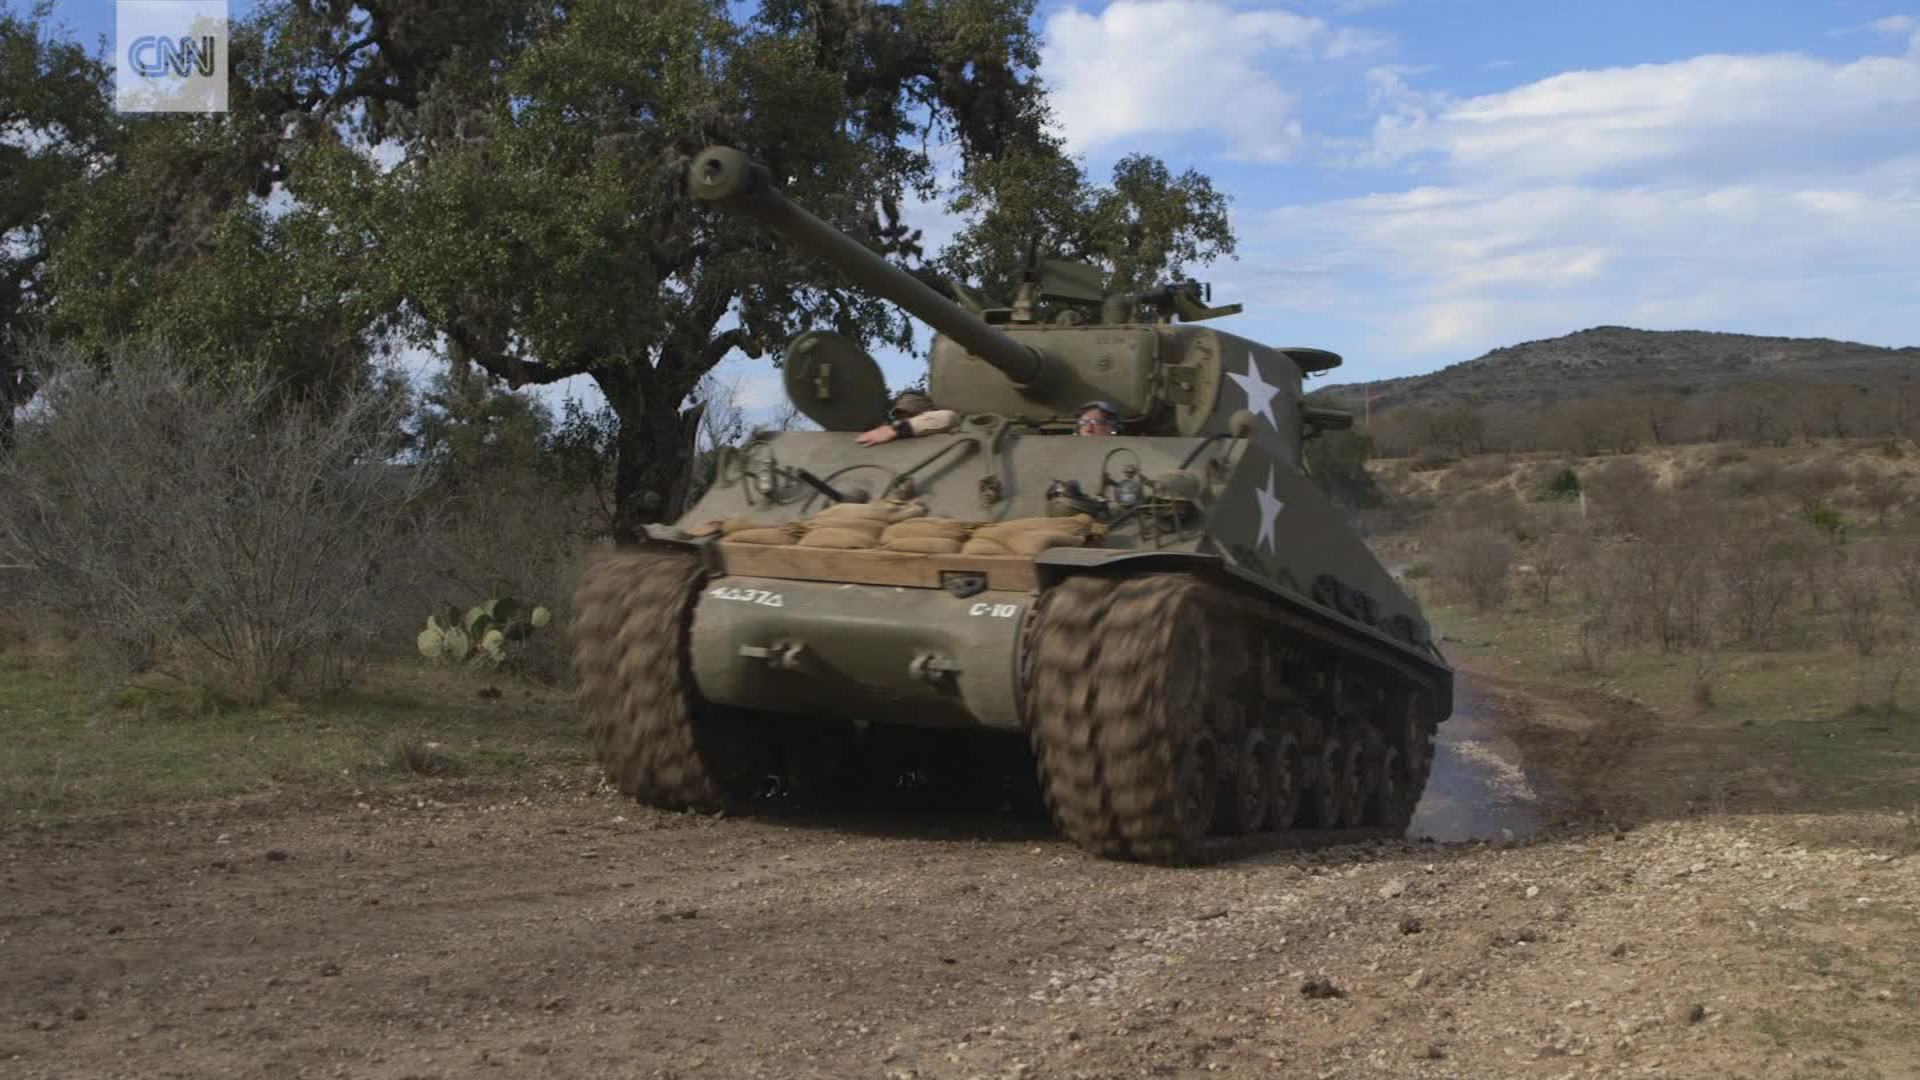 Drive A Tank >> You Too Can Drive A Wwii Era Tank In Texas